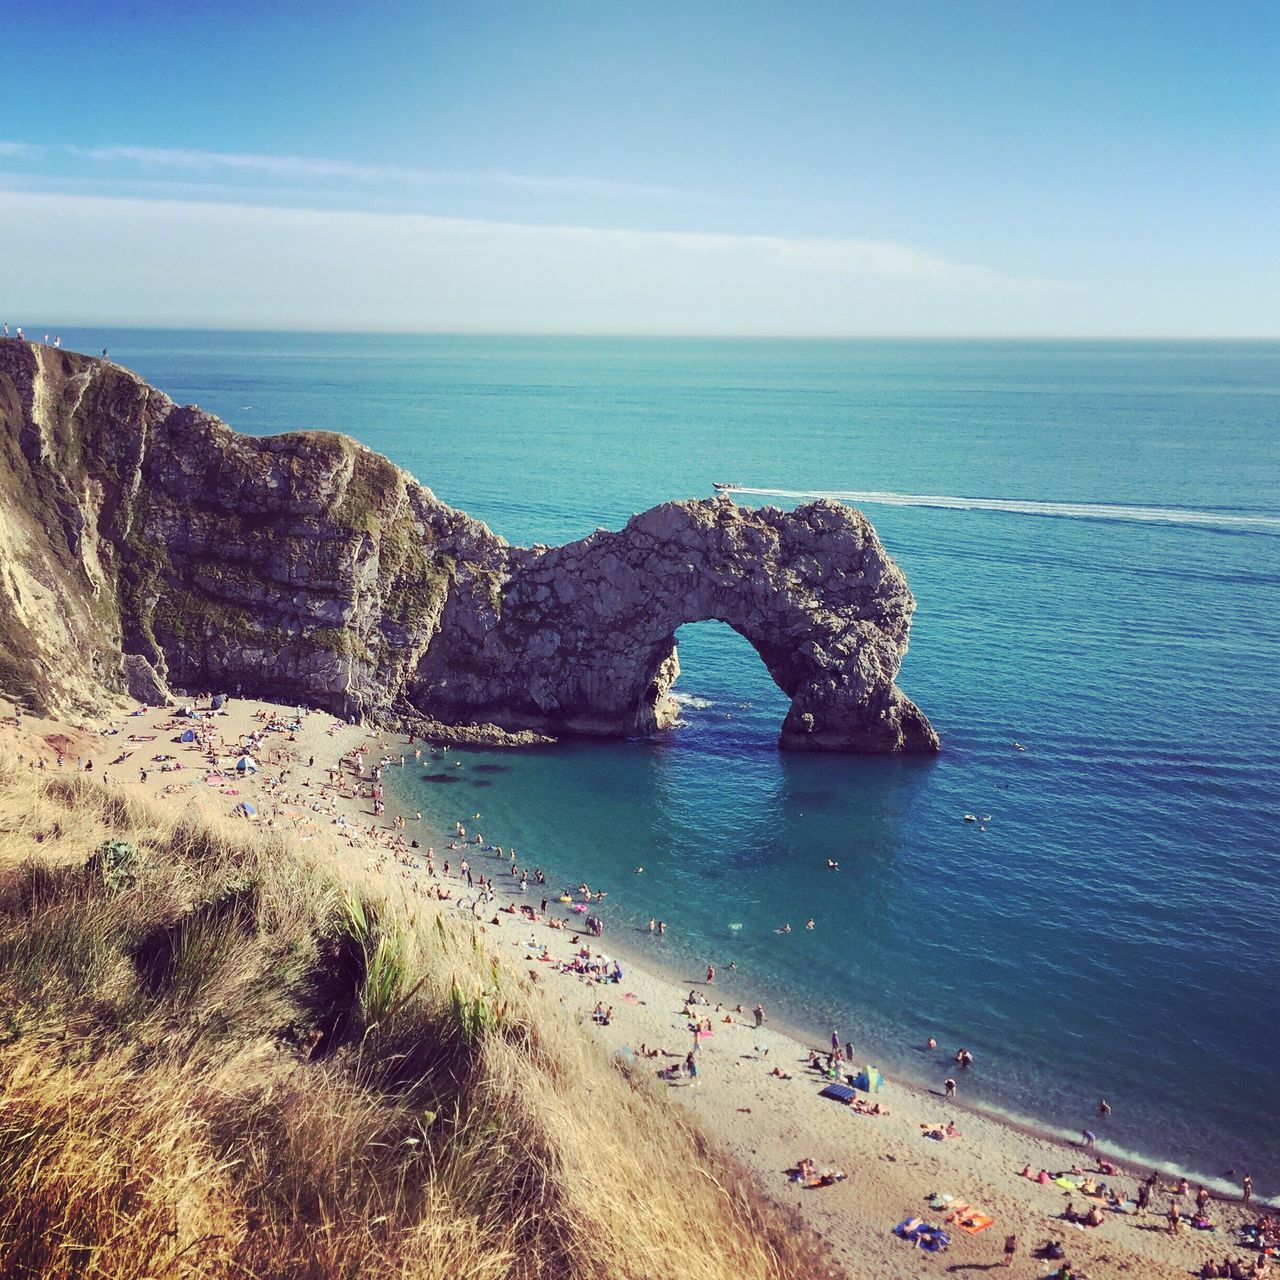 Sea Nature Scenics Horizon Over Water Beauty In Nature Tranquility Water Tranquil Scene Rock - Object Day Natural Arch Outdoors Beach Blue No People Sky EyeEmNewHere Travel Destinations Neighborhood Map Durdle Door The Great Outdoors - 2017 EyeEm Awards Jurassic Coast